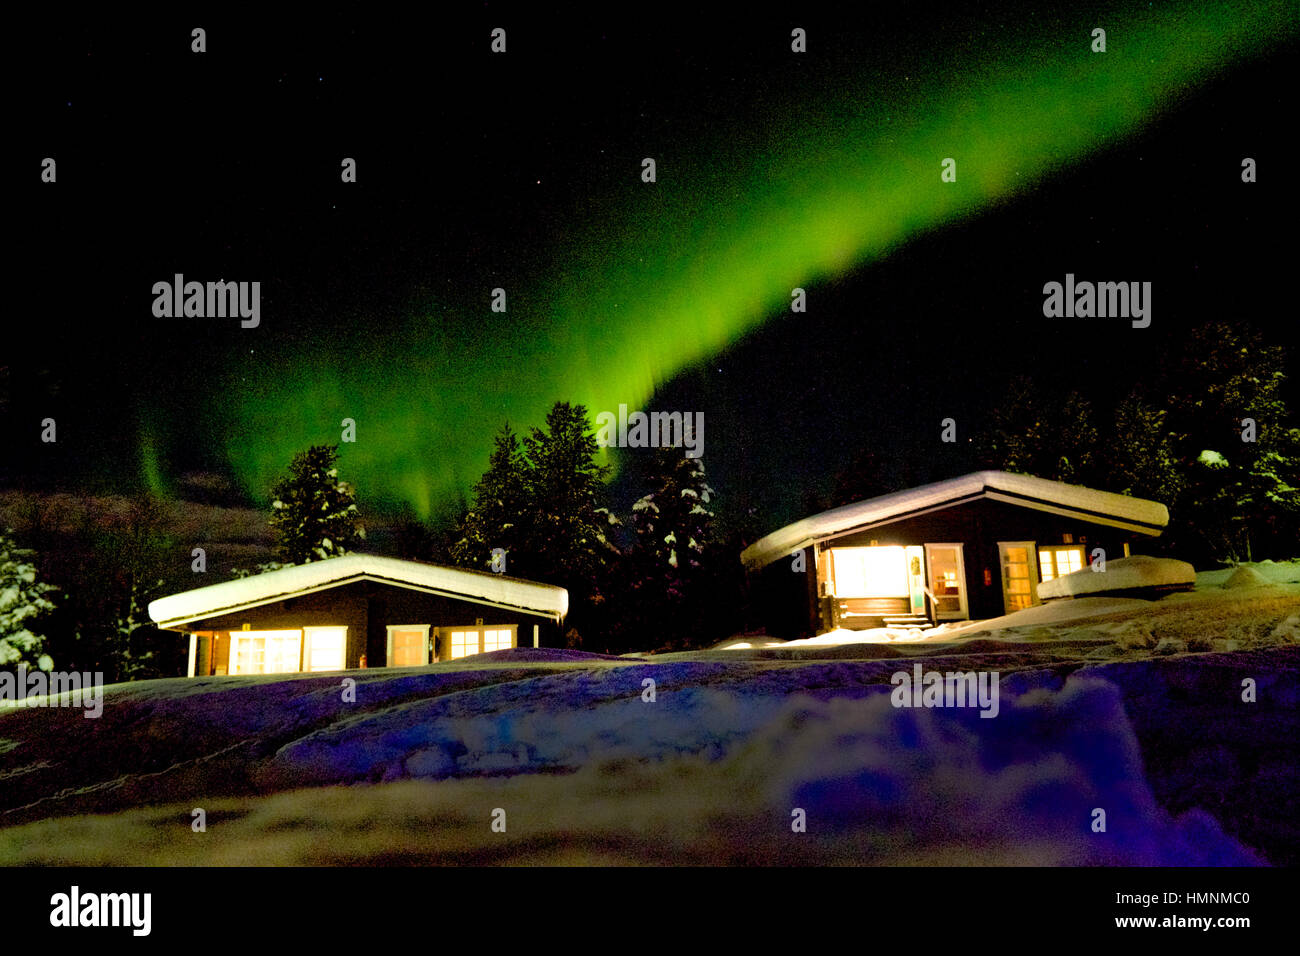 norther lights above snow covered cabins, night sky - Stock Image